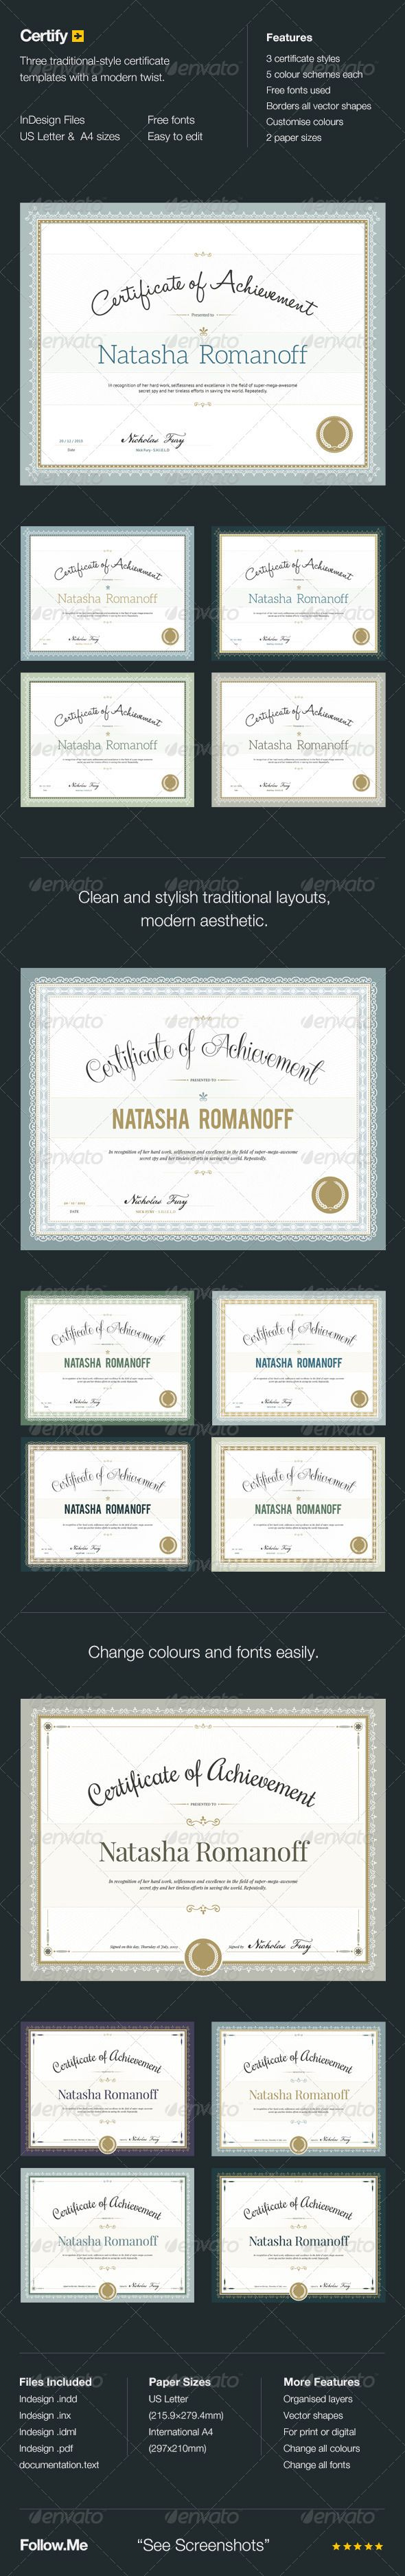 27 Best Certificate Images On Pinterest Certificate Design